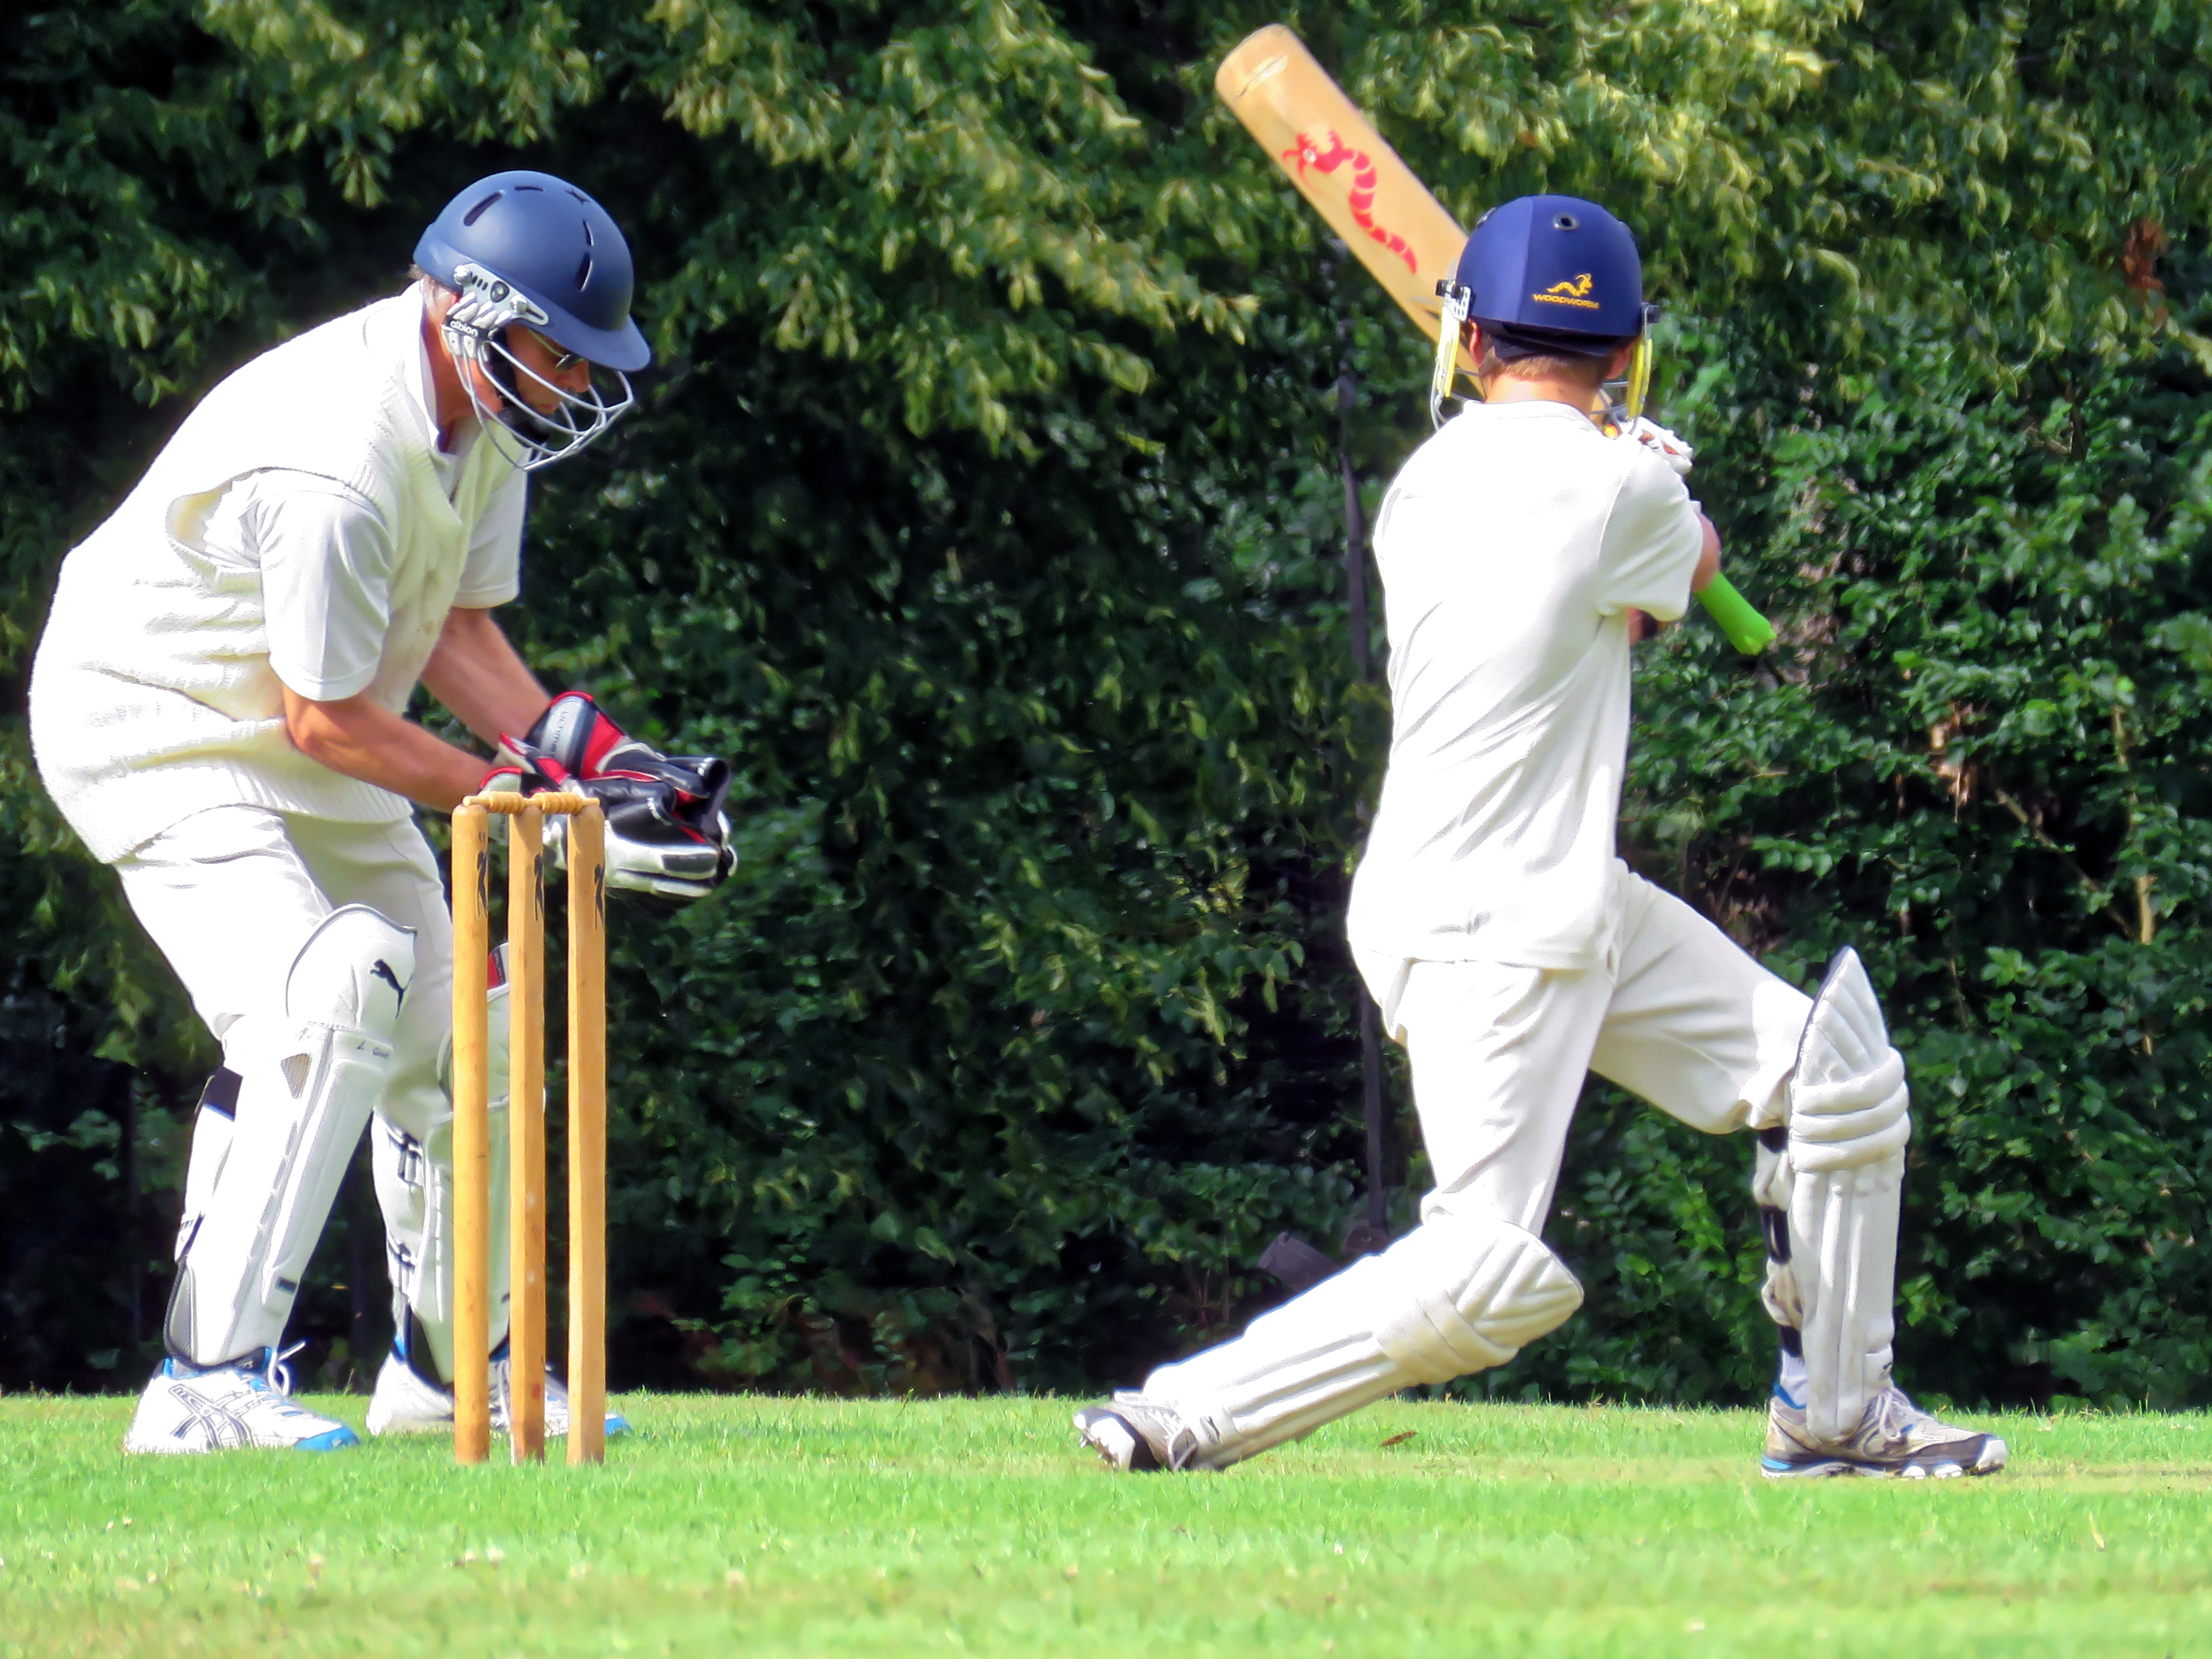 sunday cricket All the games have been moved from 11/13/16 to 01/08/17 to accommodate 2x cricket hcl will provide umpires the following teams decided to play on 11/13/16/ heccr vs tccw gacci vs togb ucc vs mccii also, the following game is moved from 01/08/16 to 01/15/16.